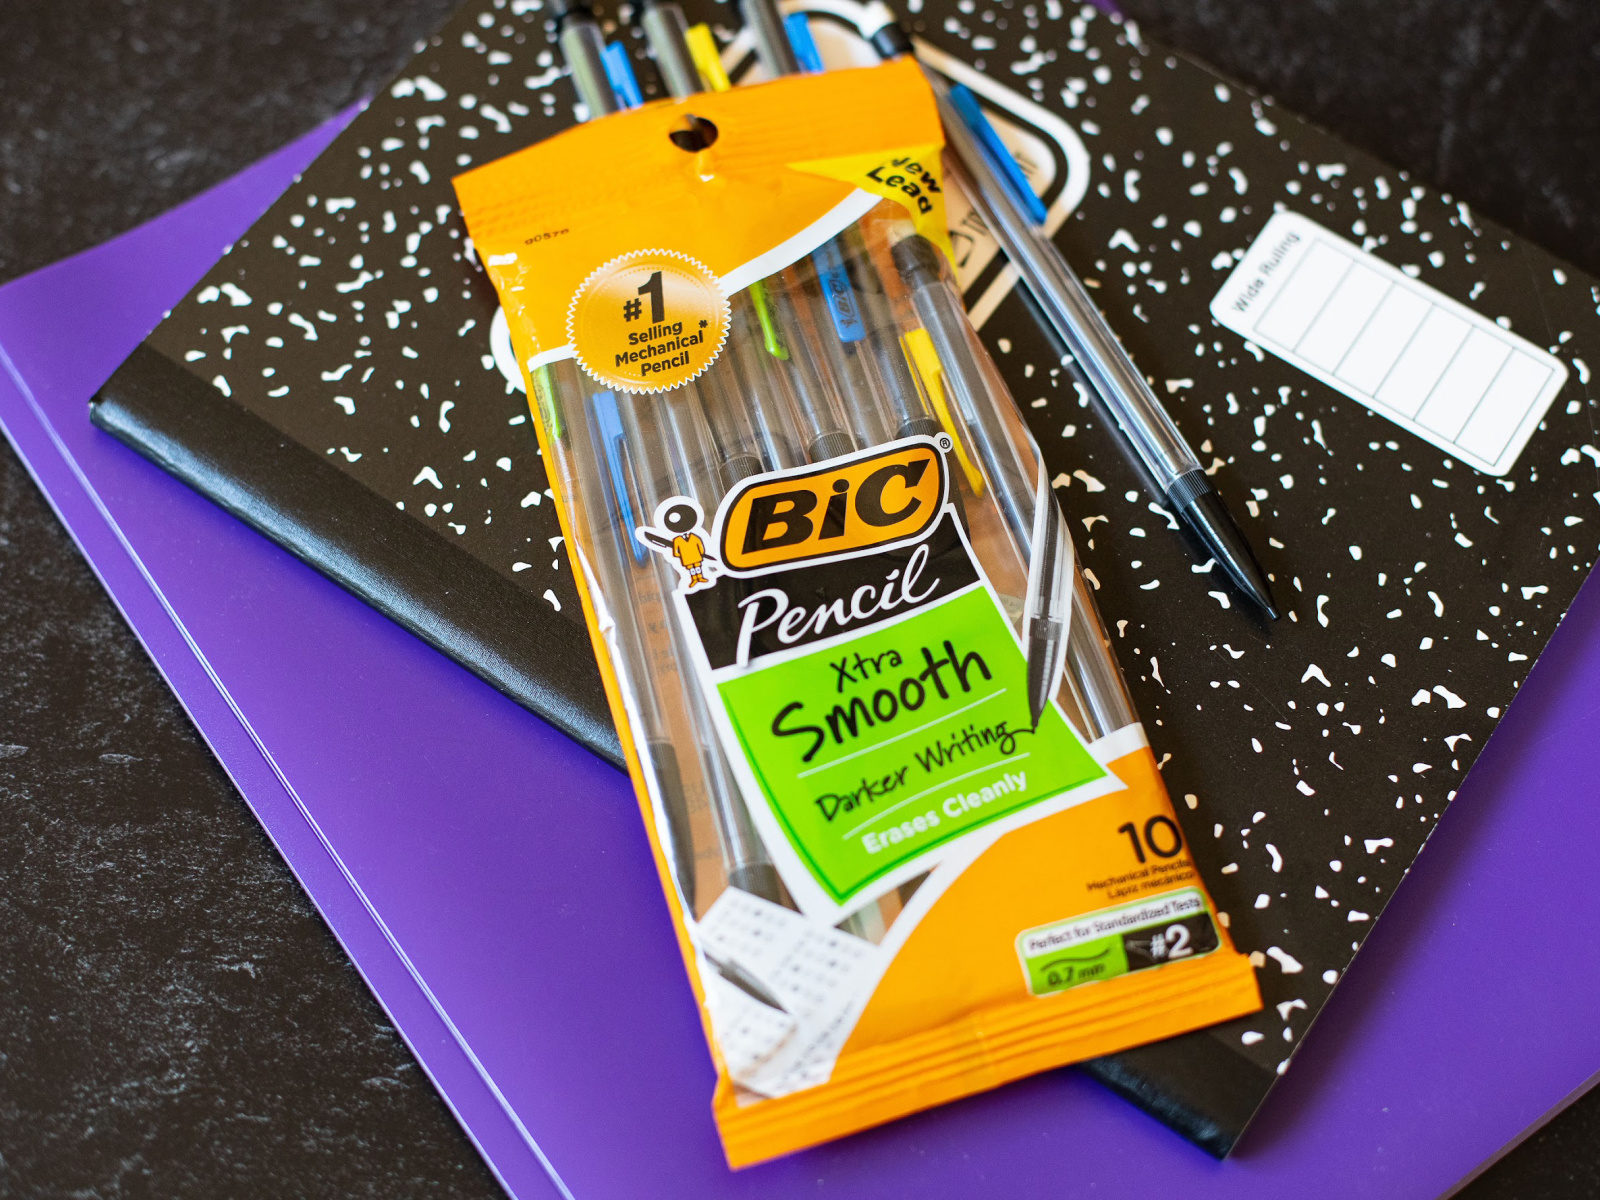 New BIC Stationery Coupon Means Cheap Mechanical Pencils At Publix on I Heart Publix